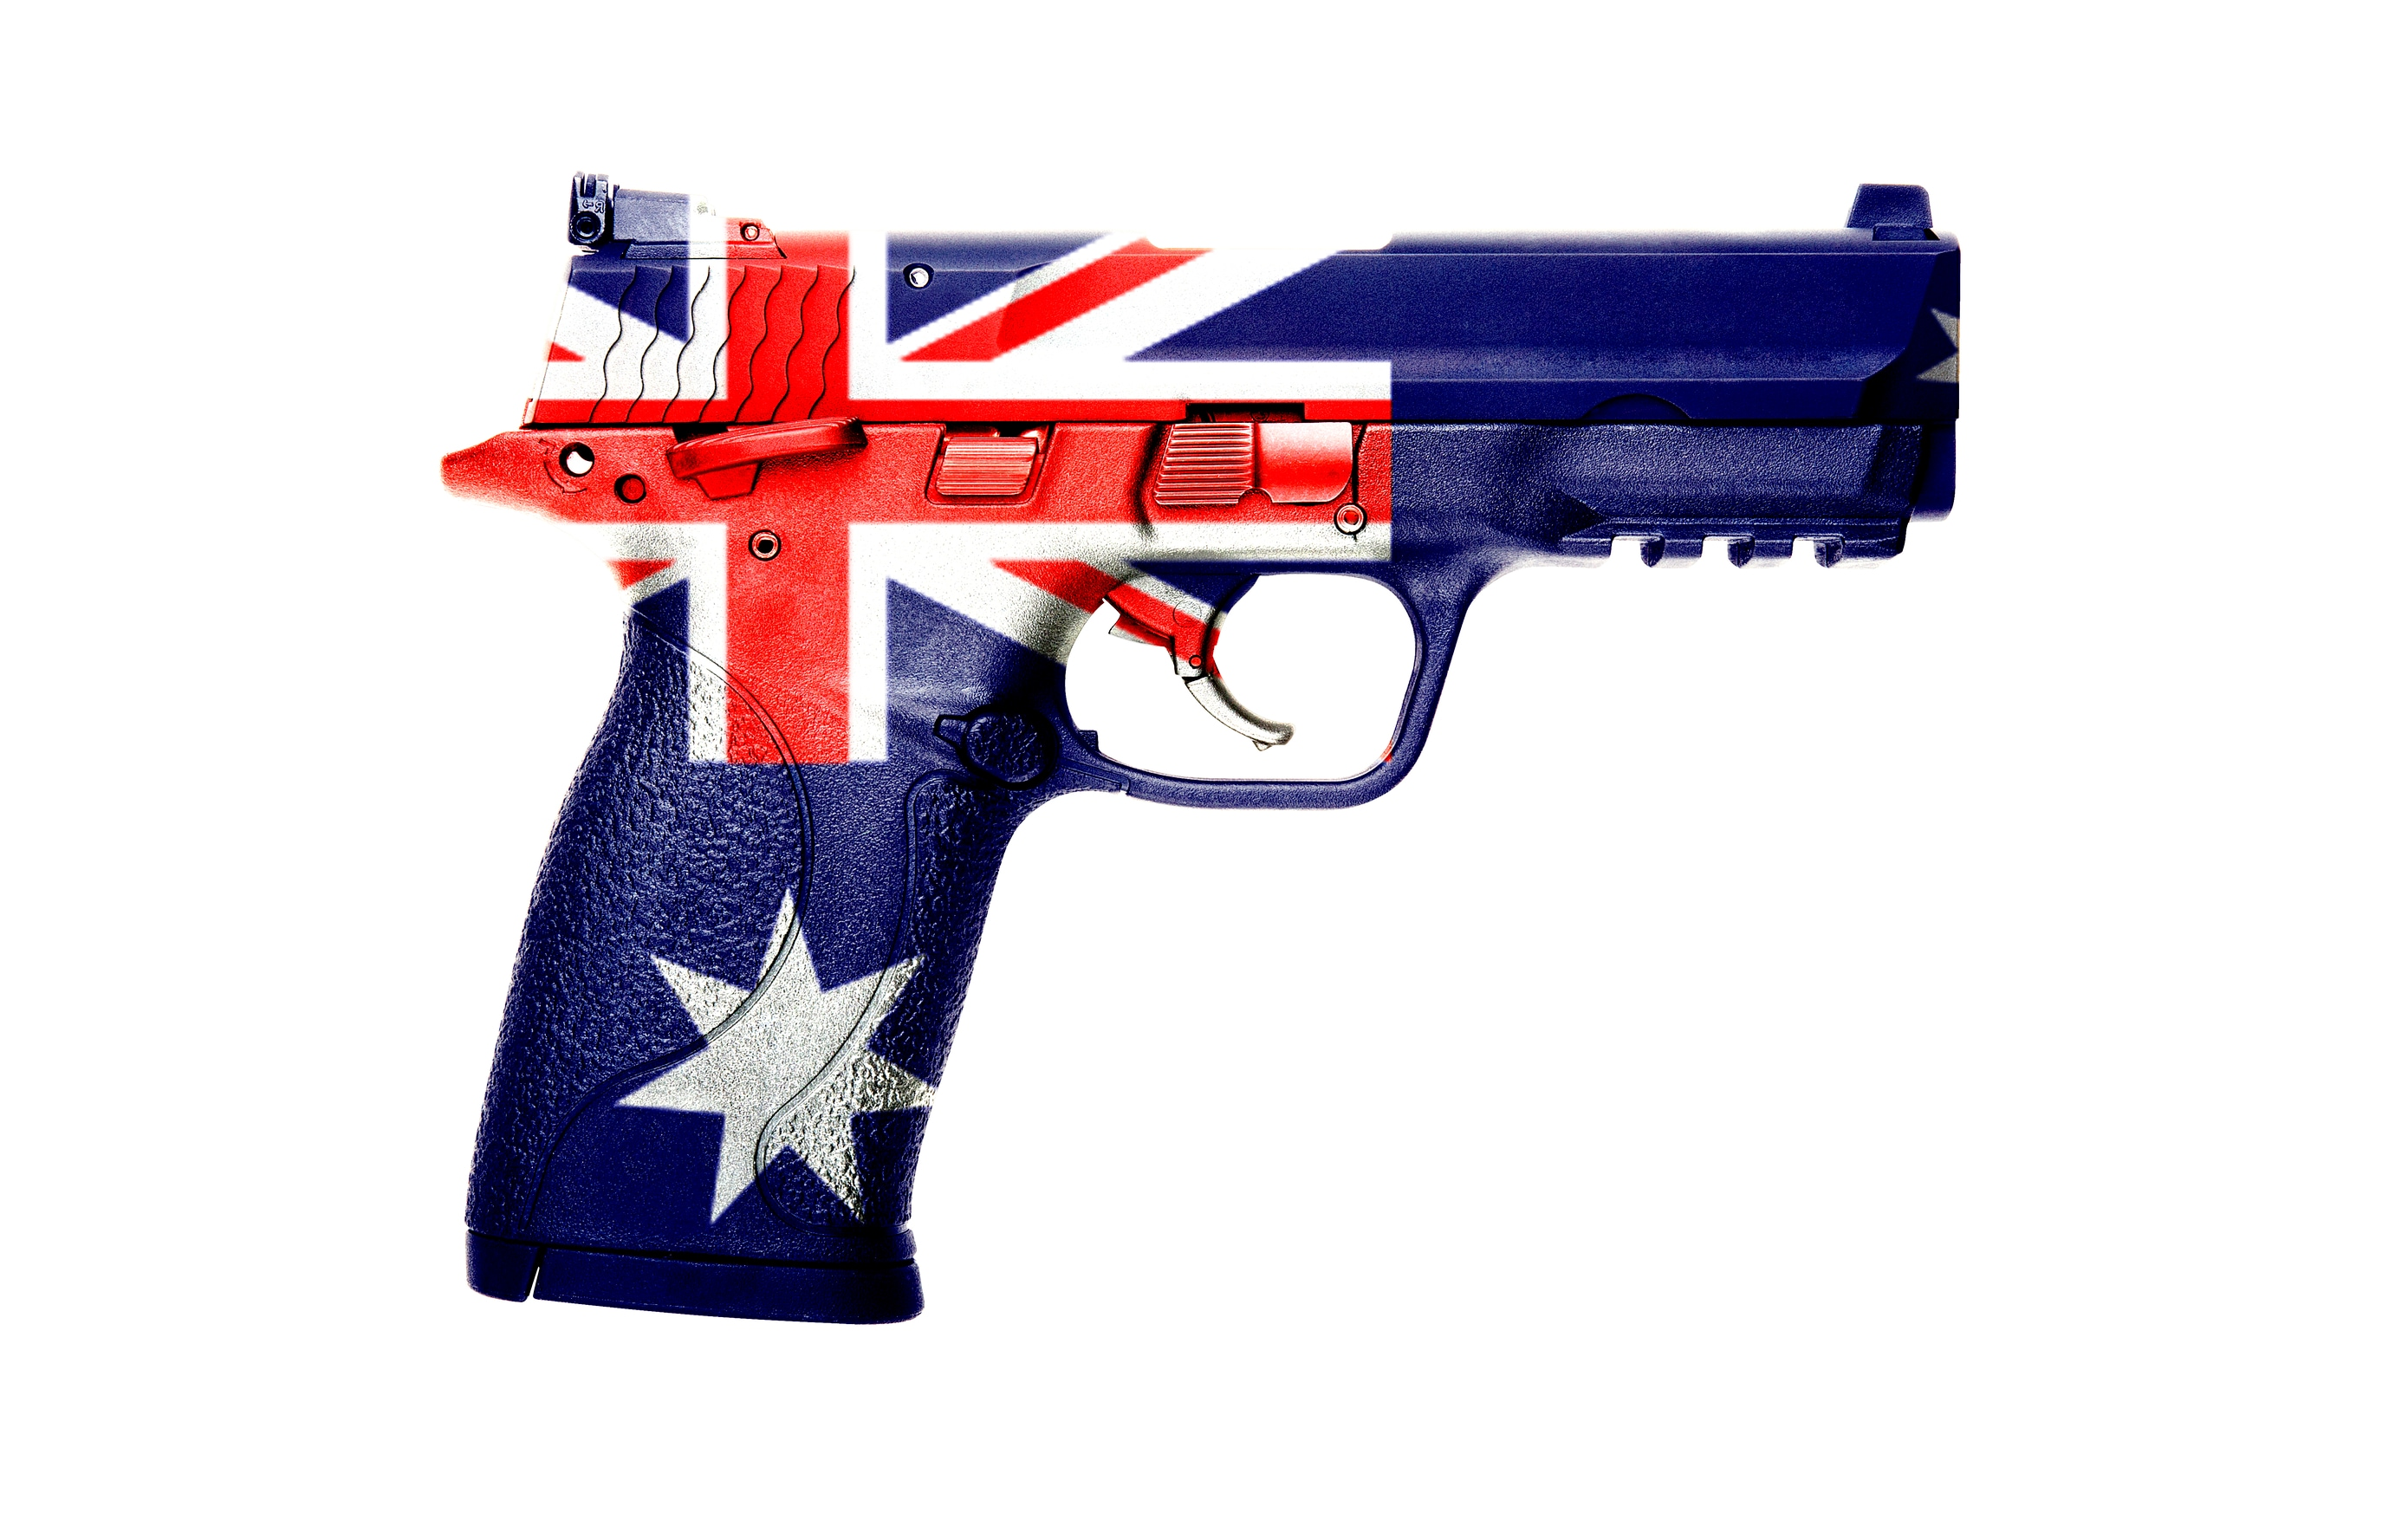 an analysis of the major problem with gun control in todays society Category: essays research papers title: problems in todays society my account problems in todays society length: be the three major problems in the society today.